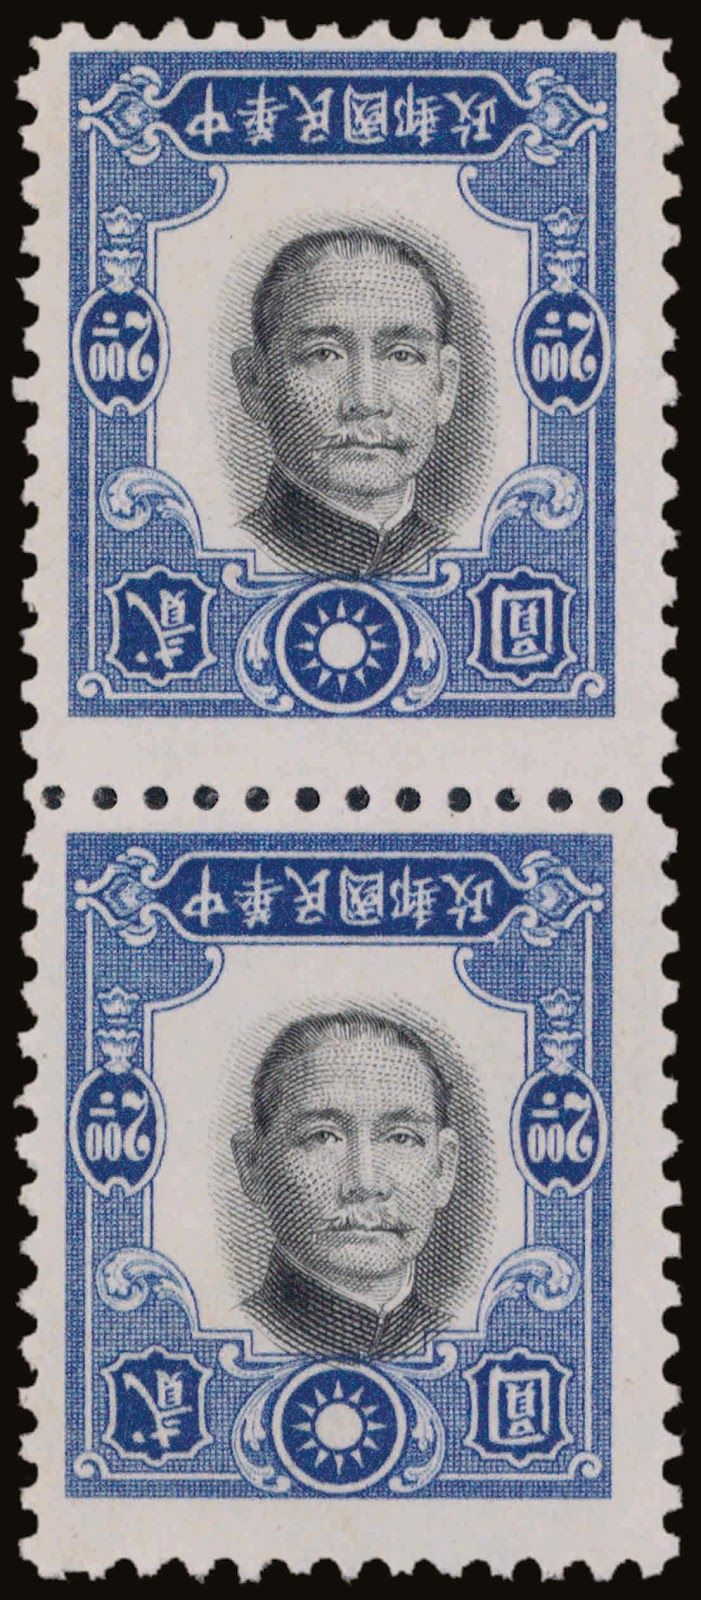 Philately Most Valuable Stamps | LuxArtAsia: Rare Sun Yat